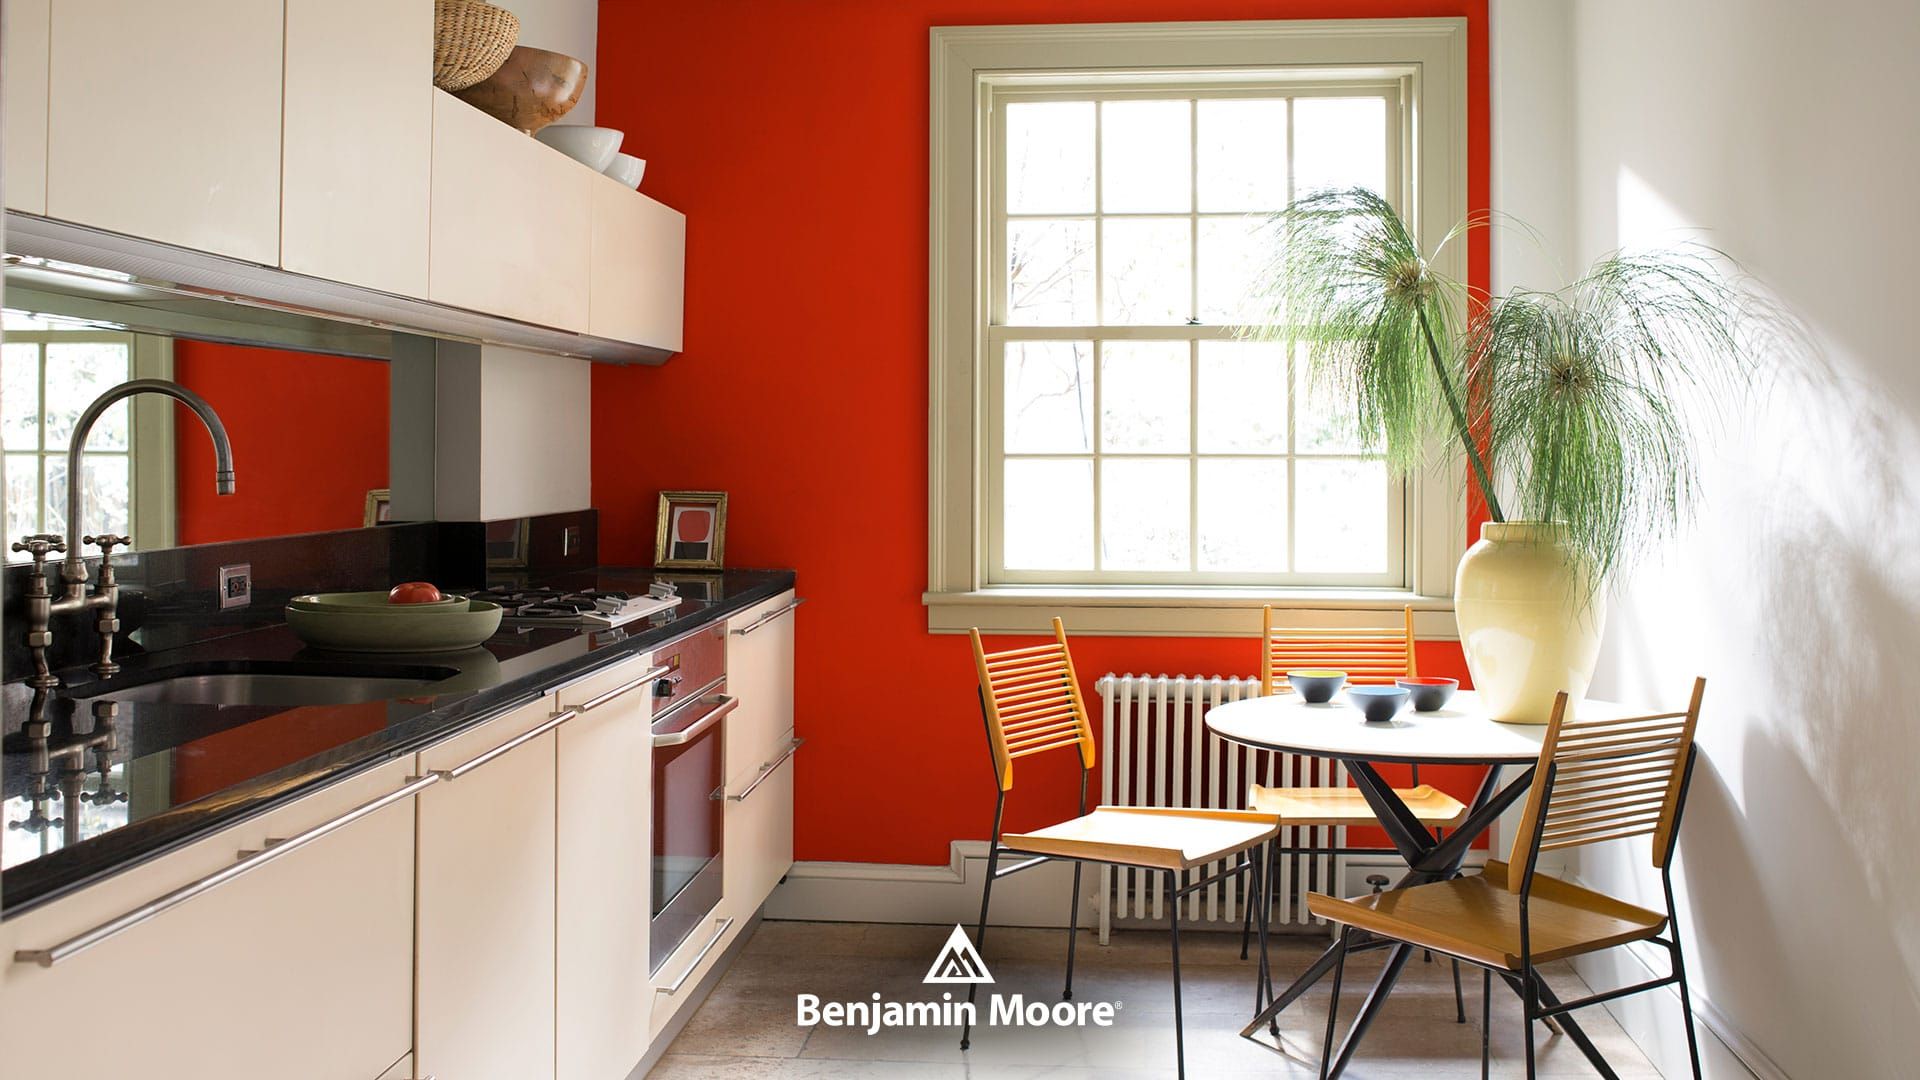 A kitchen in red featuring Benjamin Moore Tomato Tango and Harbor Gray